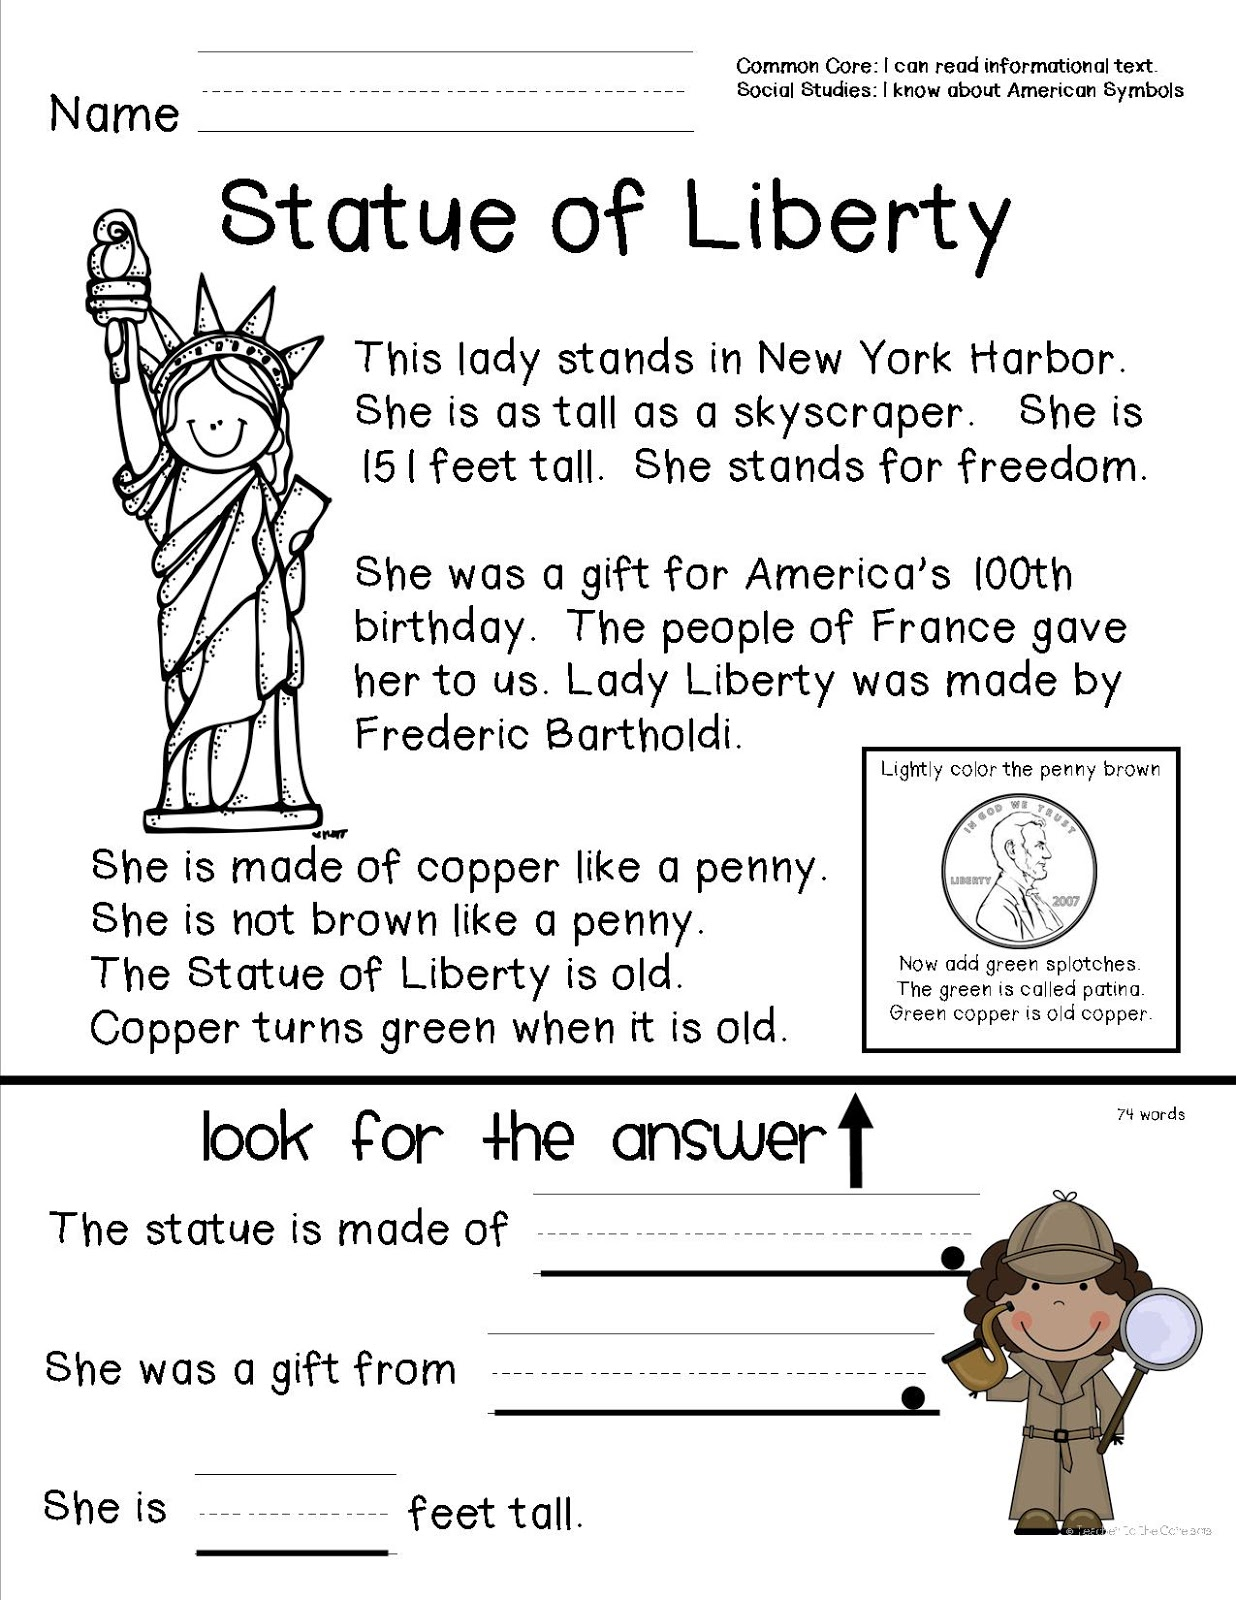 Worksheet Comprehension Activities For 2nd Grade teacher to the core american symbols october 13 2012